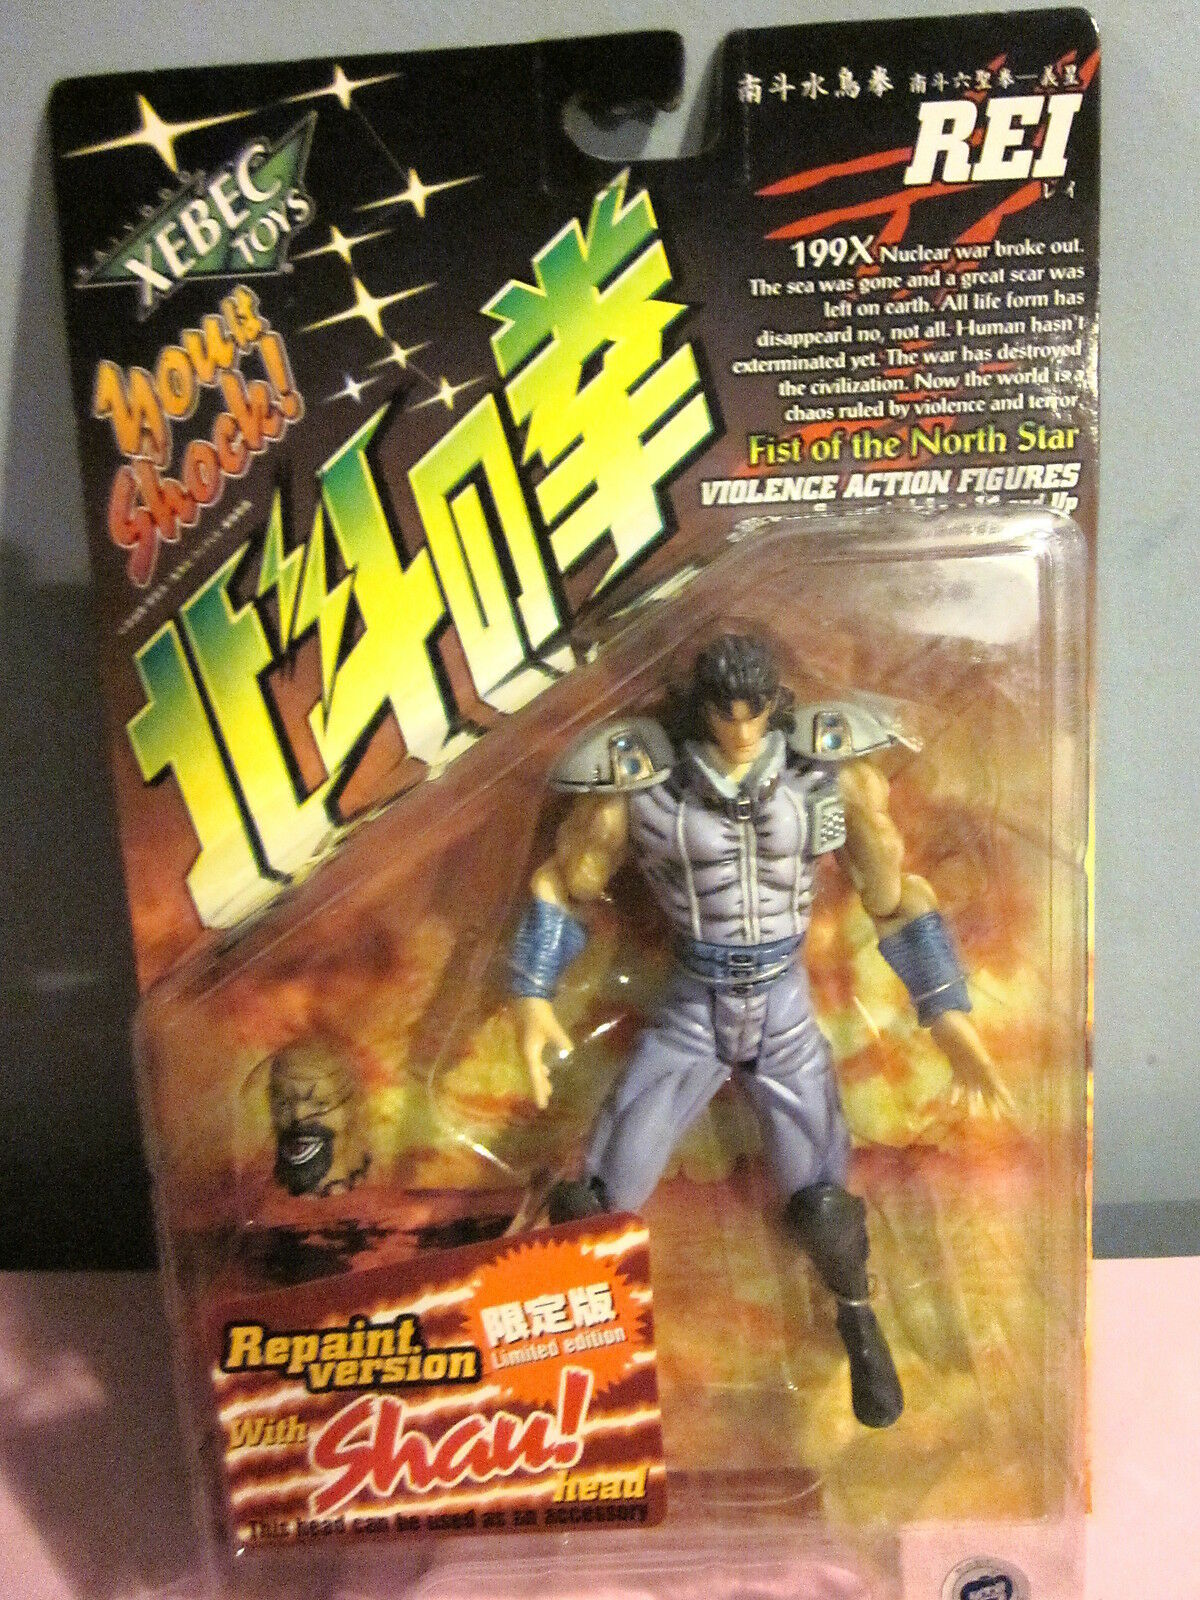 Xebec Toys REI Repaint Version With Shau Head Fist of The North Star